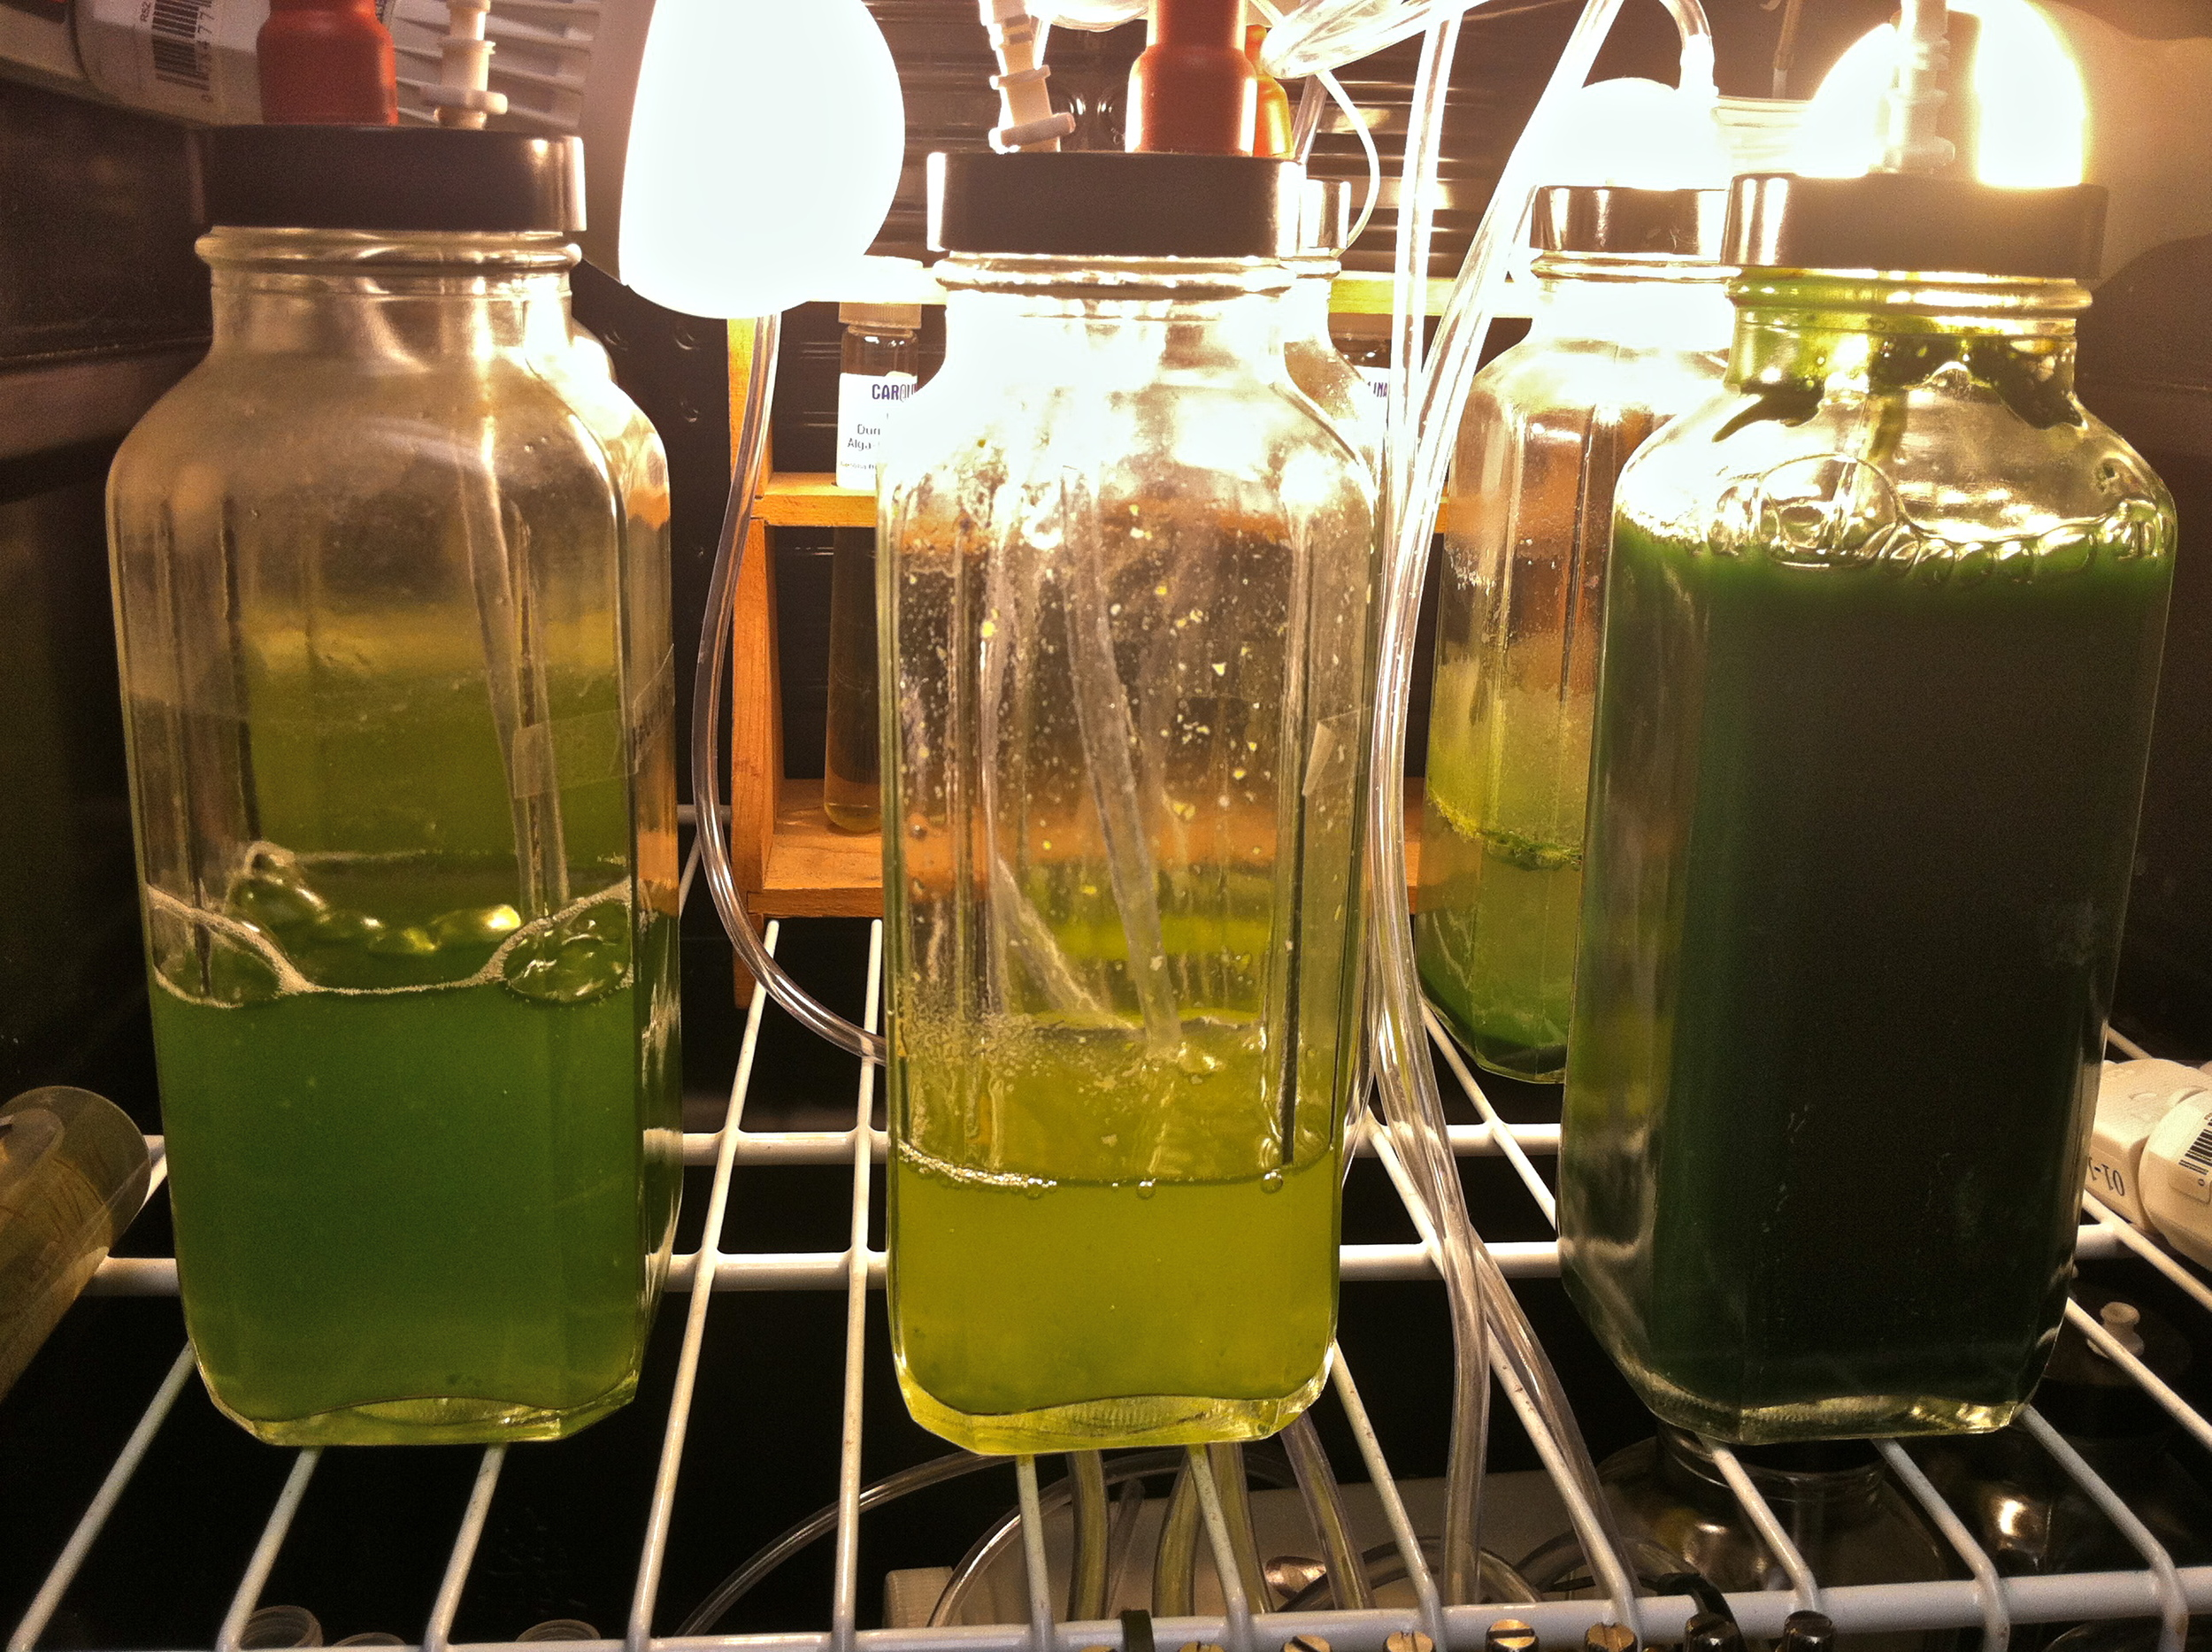 Growth chamber with small scale algae cultures.  Haematococcus ,  Spirulina  and  Dunaliella  are shown here.